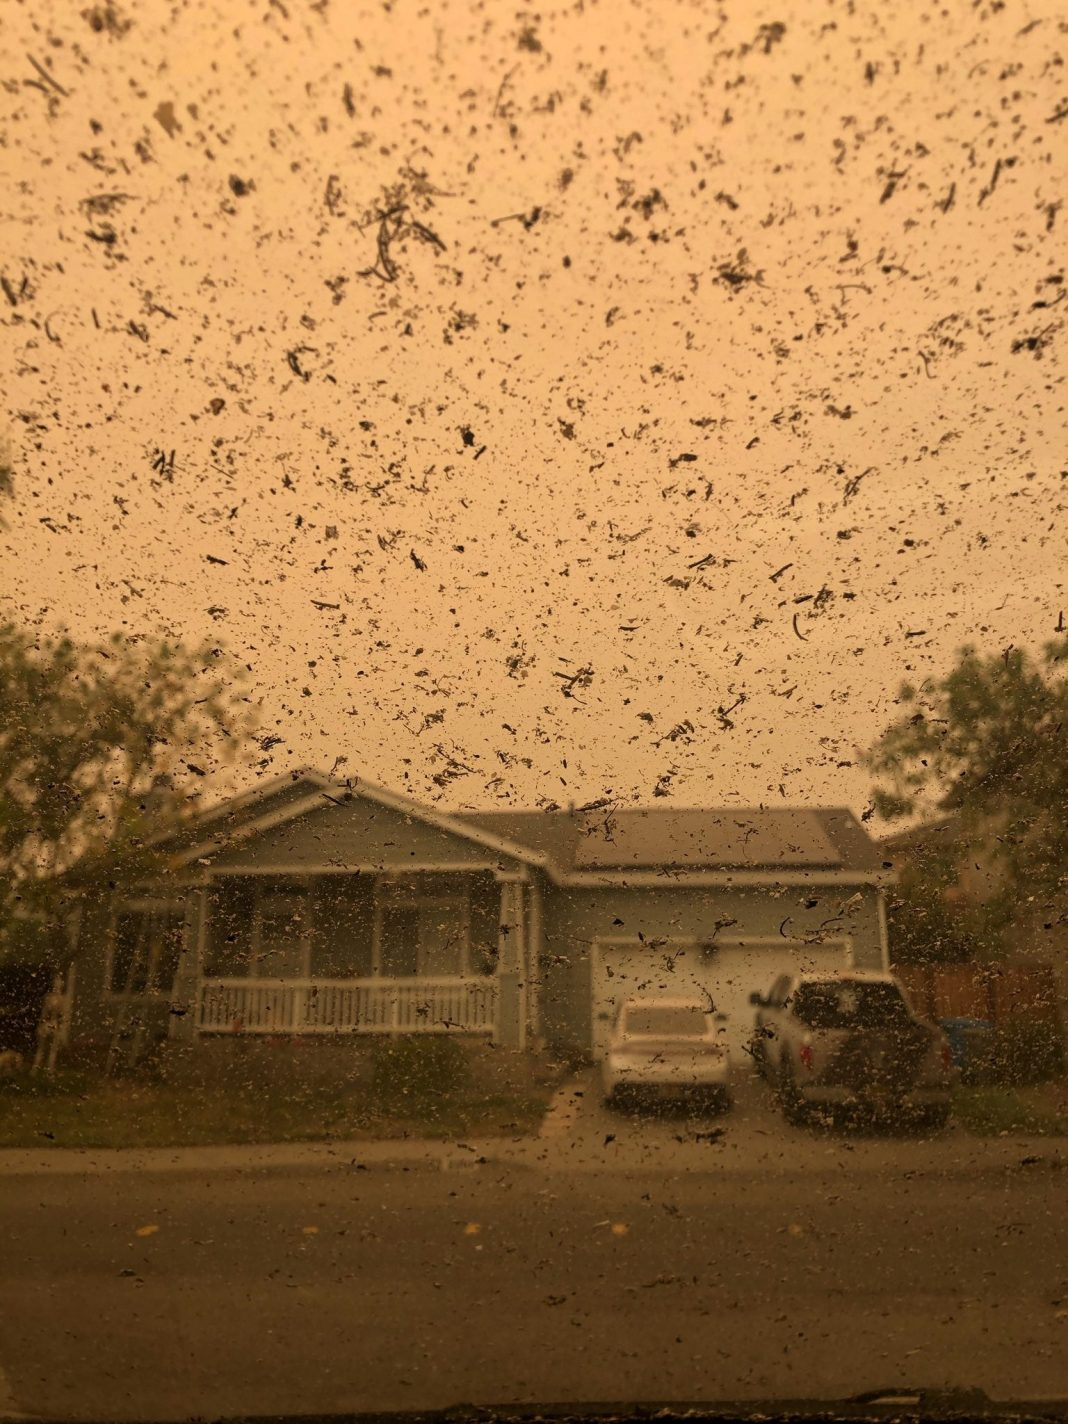 Massive Clusters of Ash Fall From the Sky in California